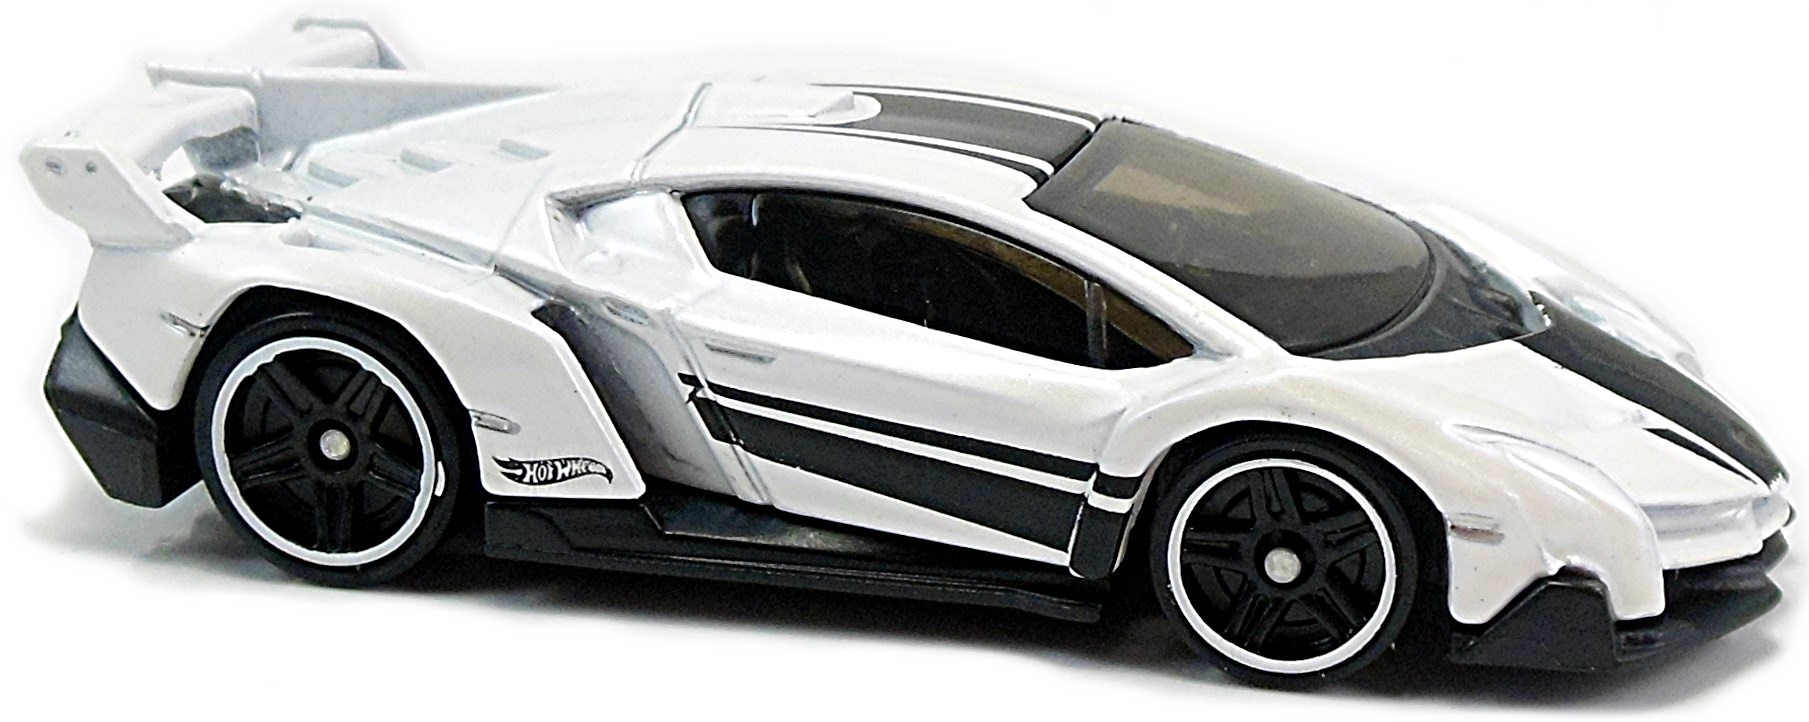 lamborghini veneno - 73mm - 2014 | hot wheels newsletter